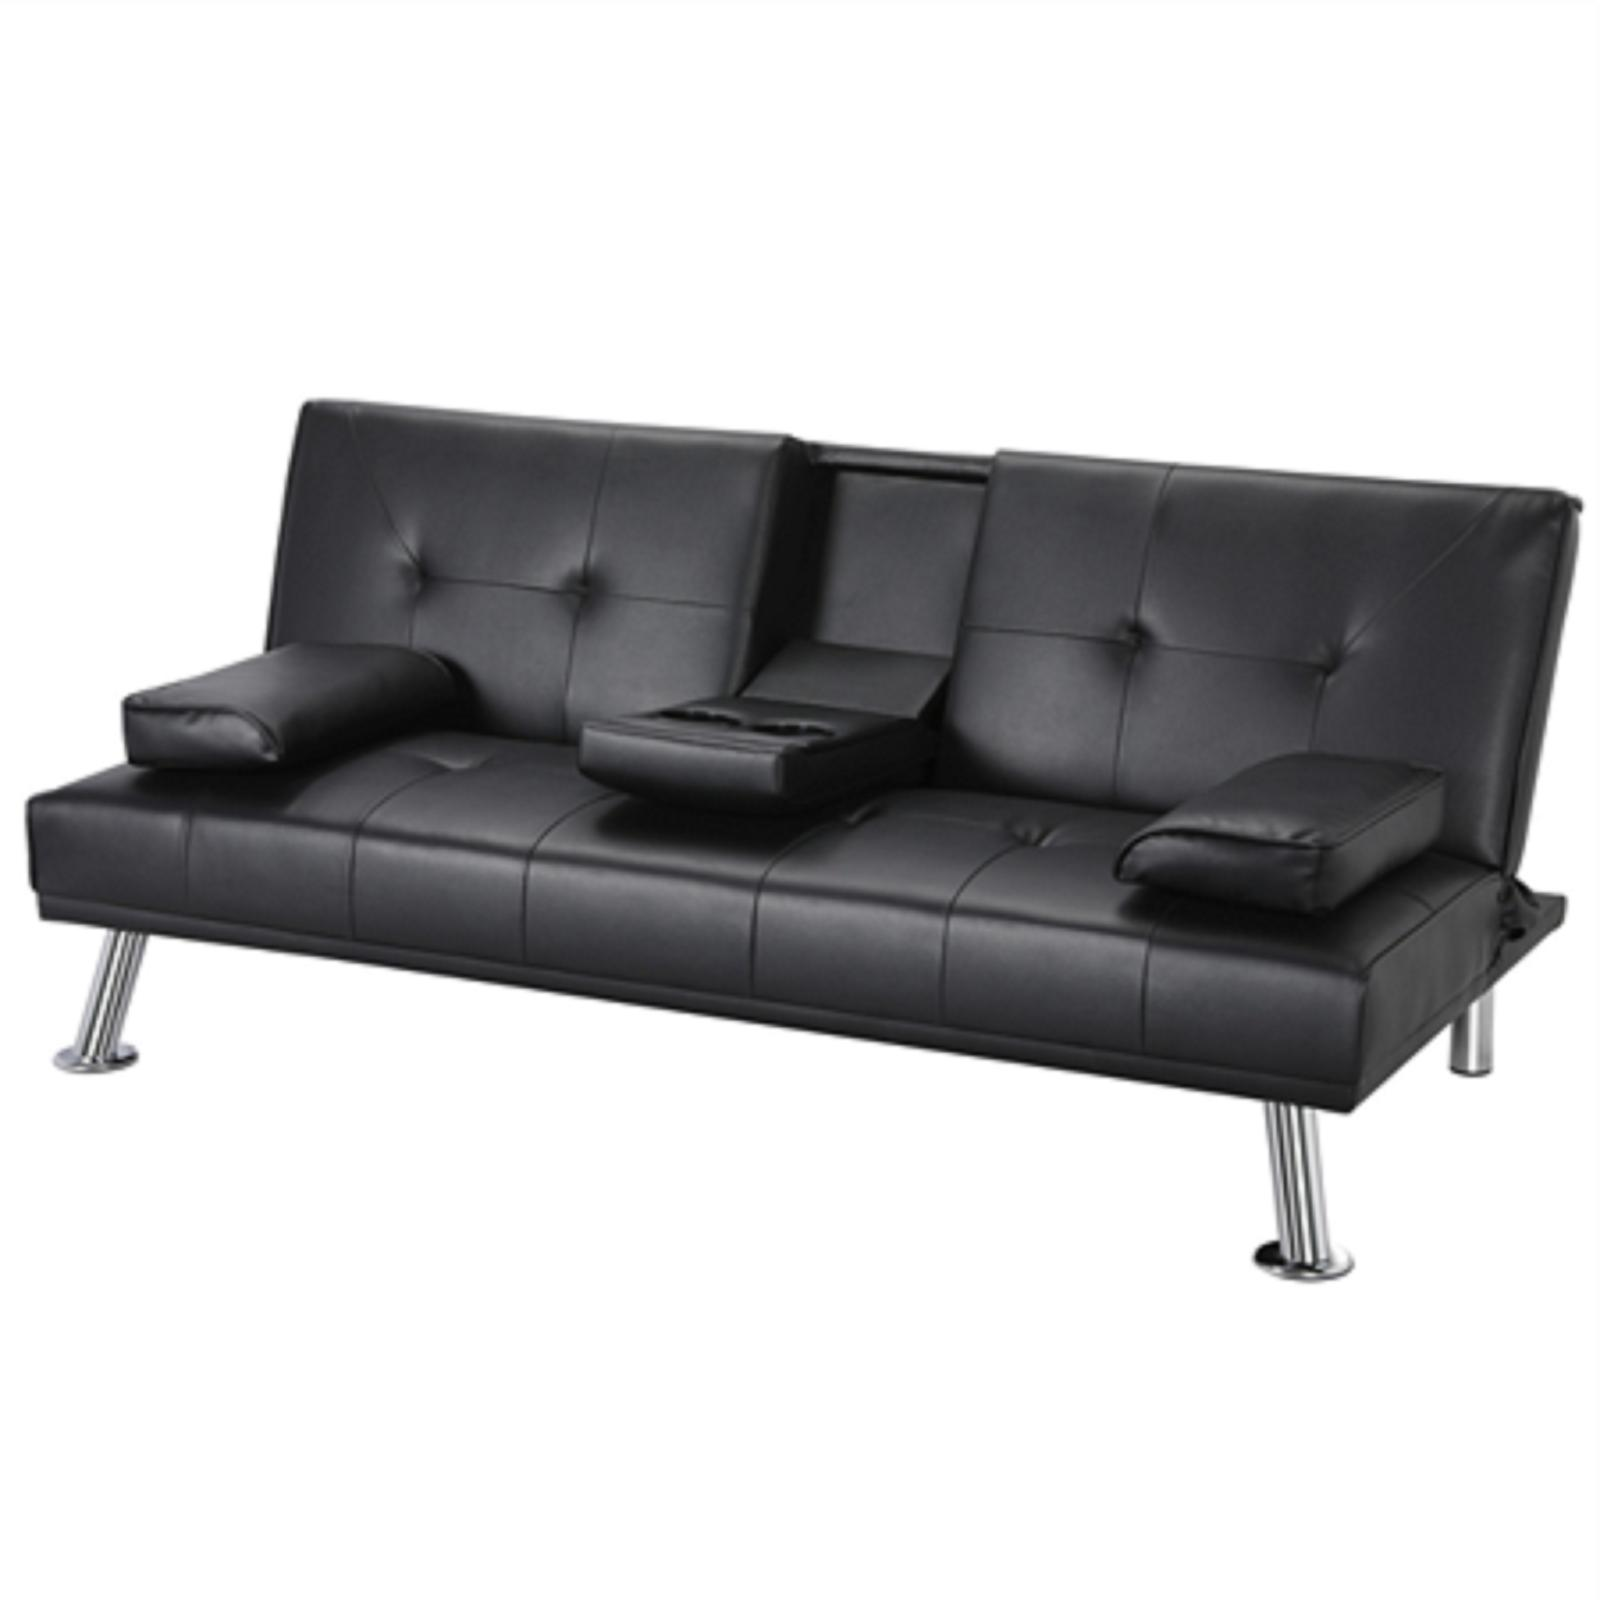 PU Leather Futon Home Room Guest Bed Loveseat